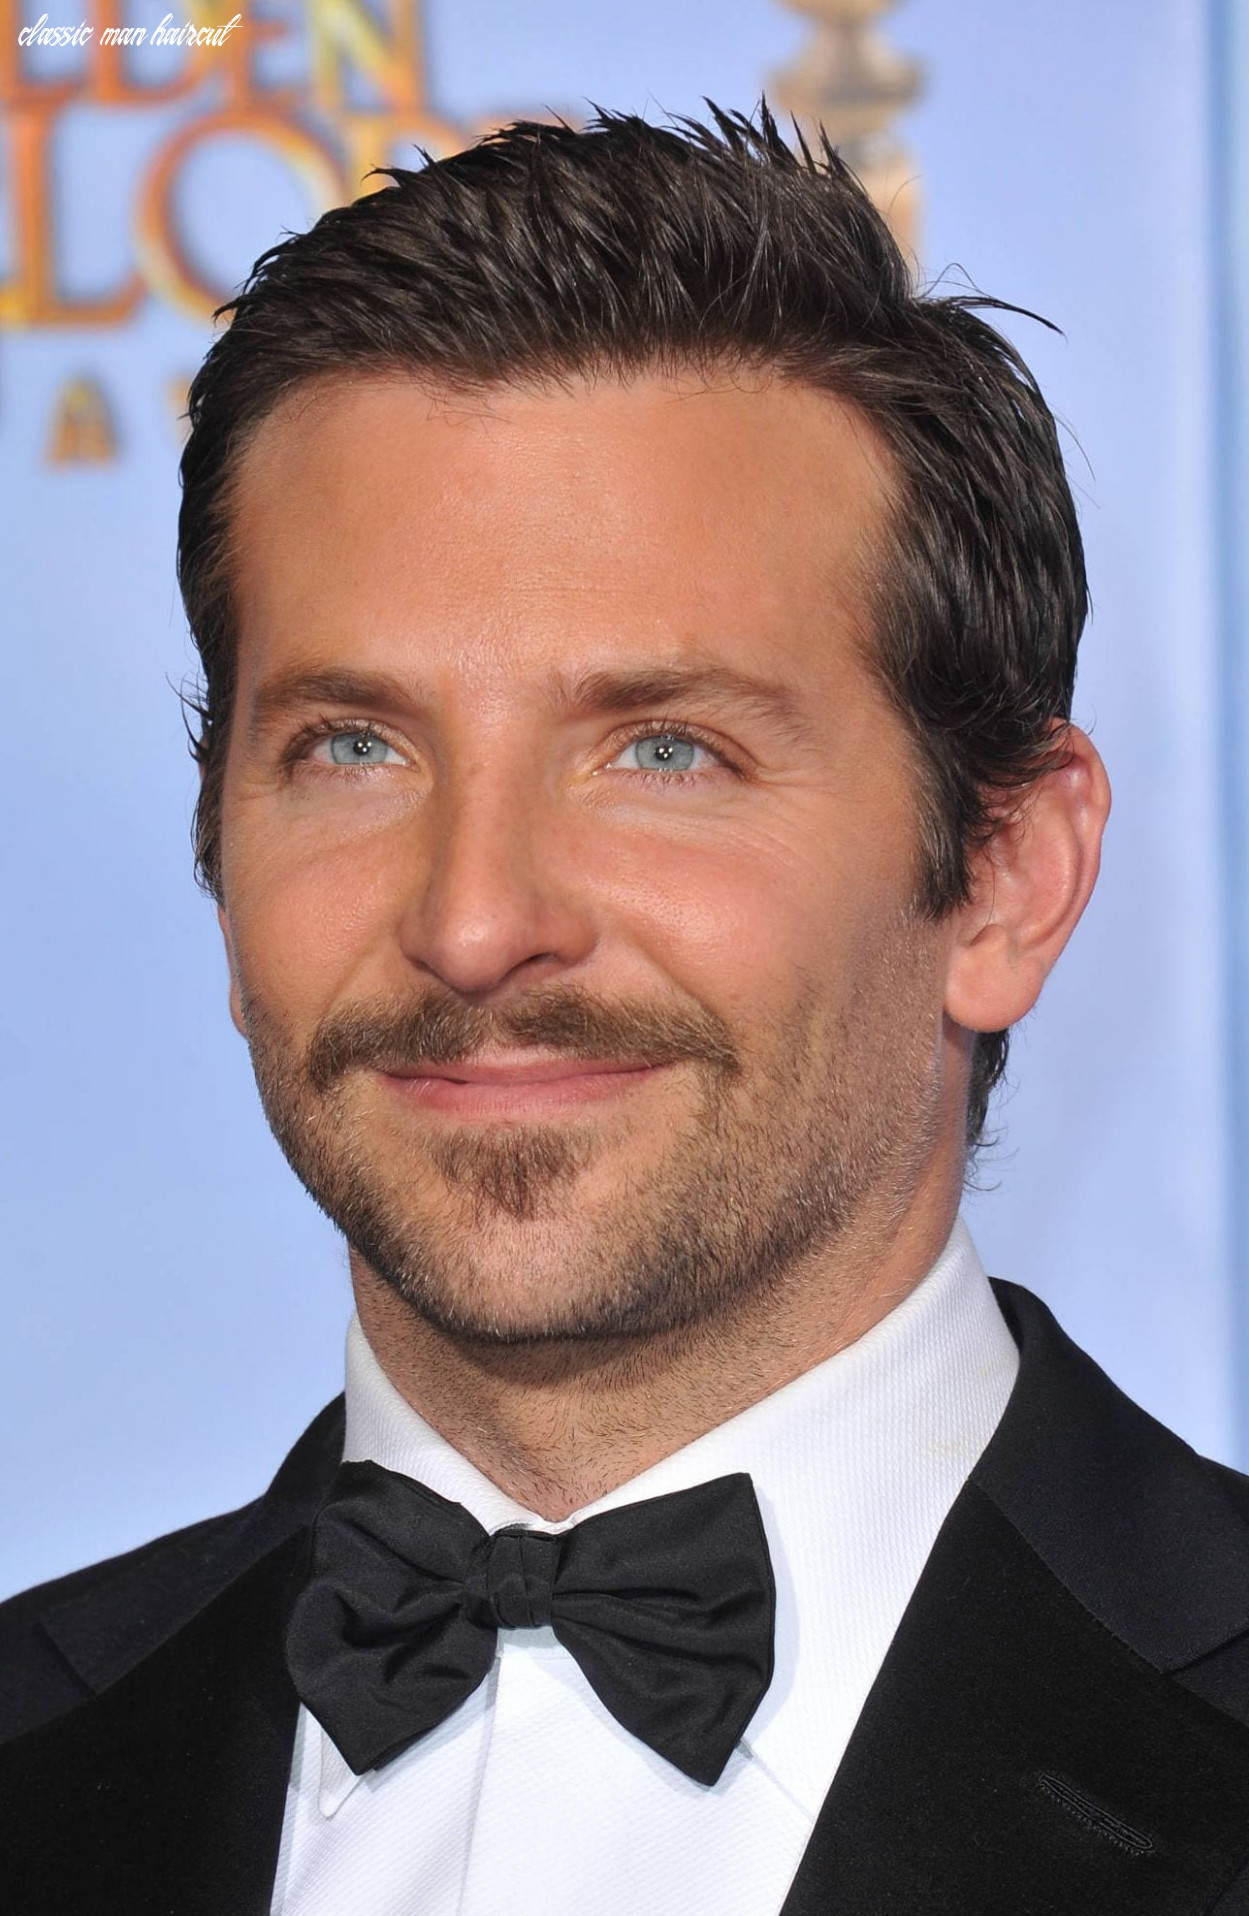 10 side part haircuts: a classic style for gentlemen classic man haircut